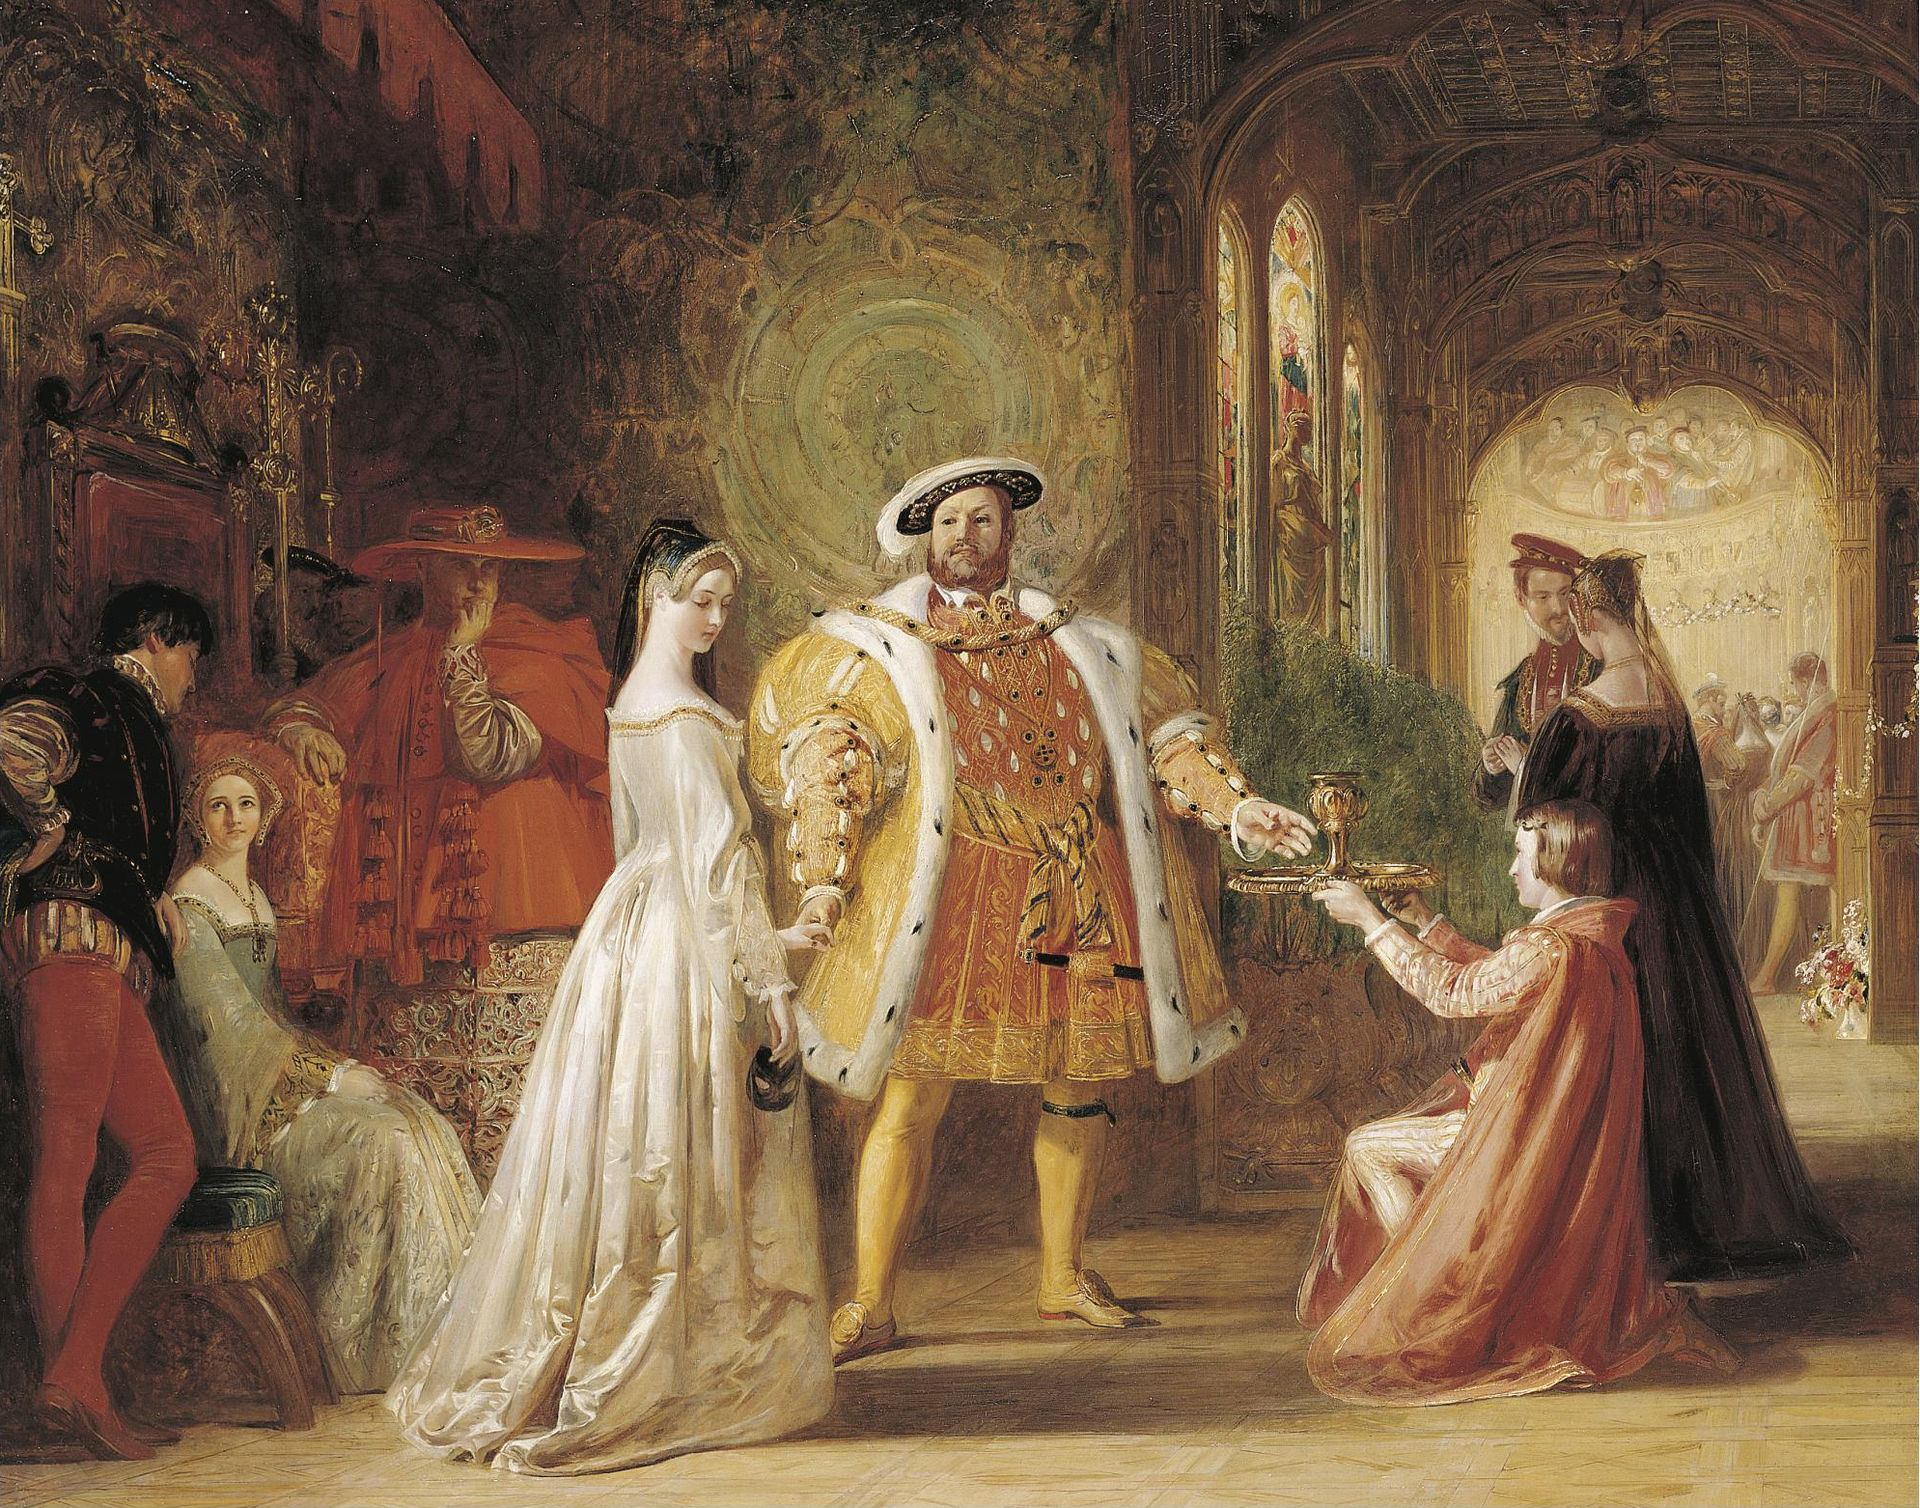 The painting the First interview between Henry the EIGHTH and Anne Boleyn by Daniel Maclise